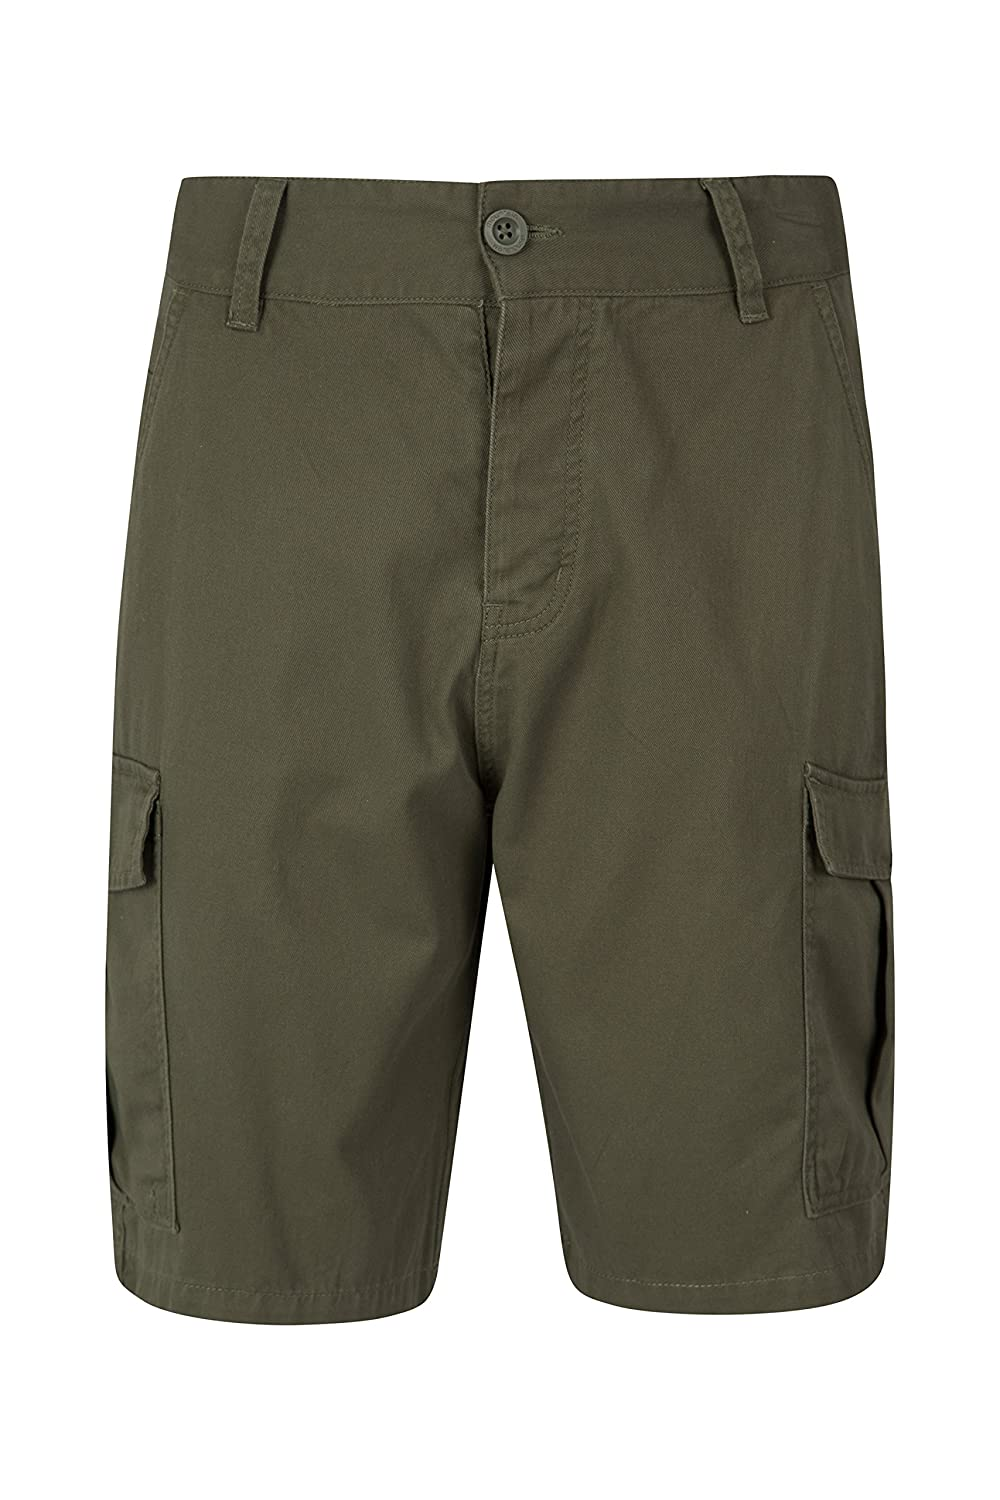 Mountain Warehouse Lakeside Mens Shorts - 100% Durable Twill Cotton Cargo Shorts, Durable Summer Shorts, 6 Pockets - for Walking, Running, Hiking & Camping Blue 30